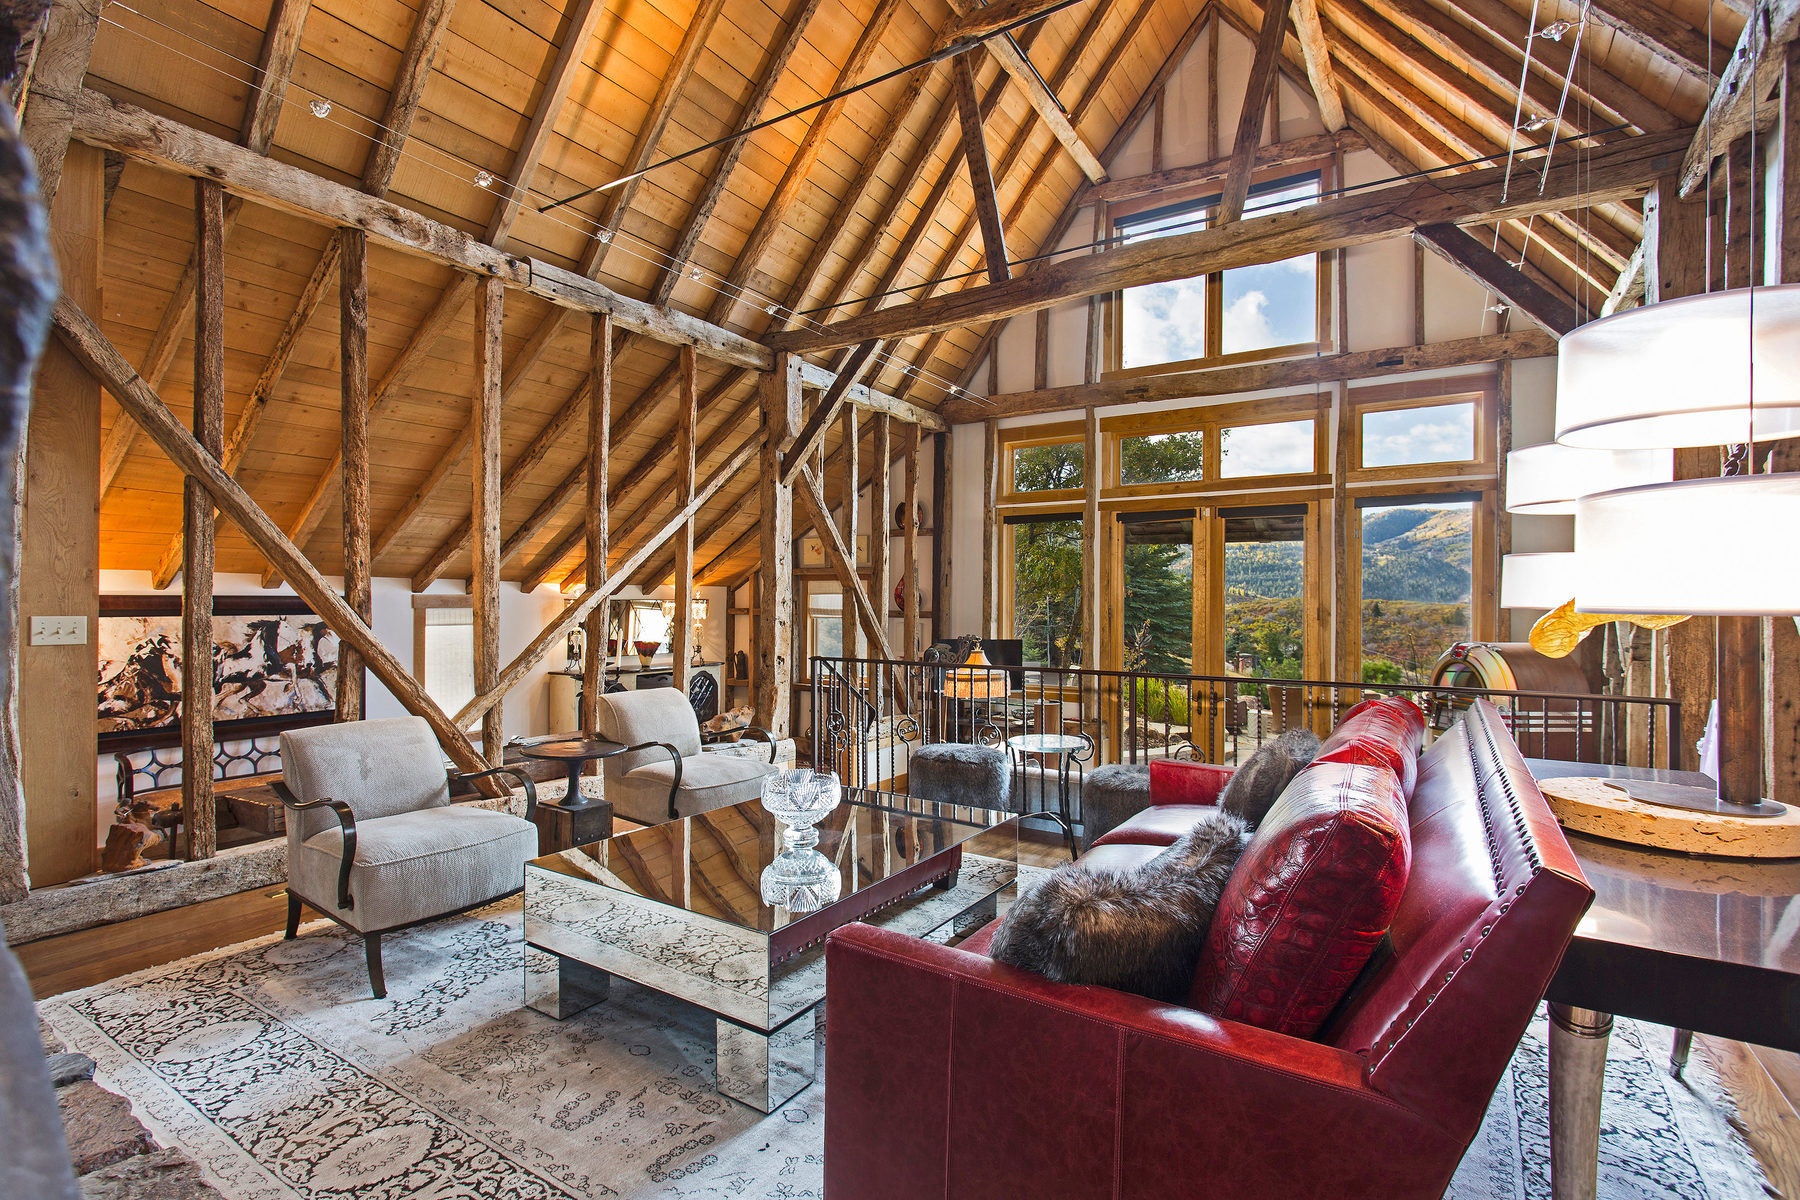 Additional photo for property listing at The Takeley Barn - Ultra Rare, Irreplaceable Rustic Chic in The Aerie 1403 Eagle Way Park City, Utah 84060 United States